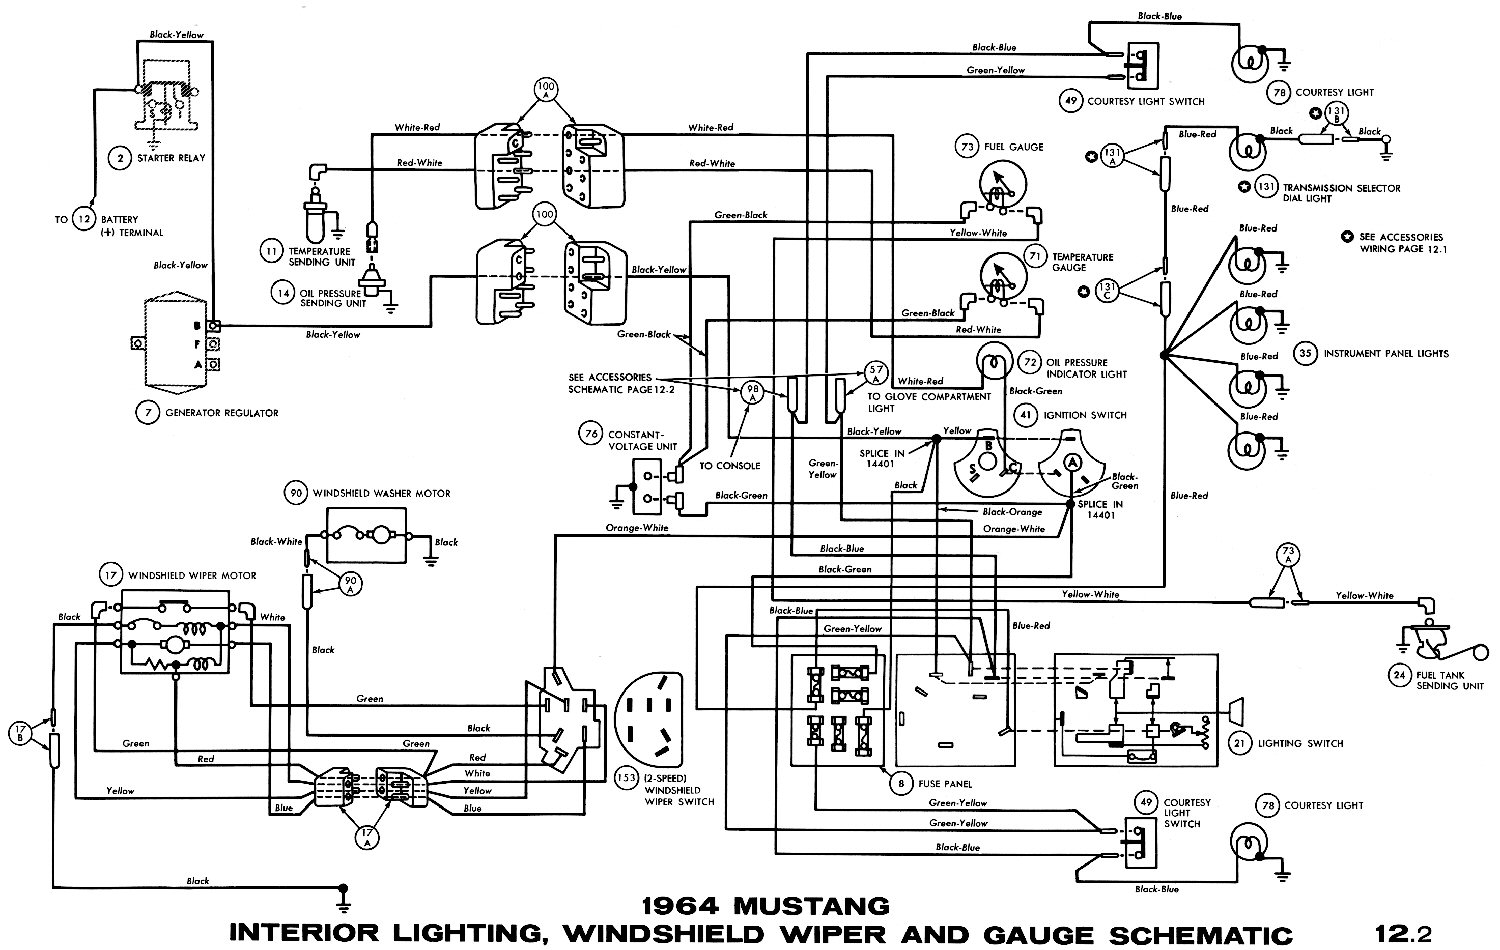 1964 Mustang Wiring Diagrams Average Joe Restoration Chart Schematic Oil Pressure